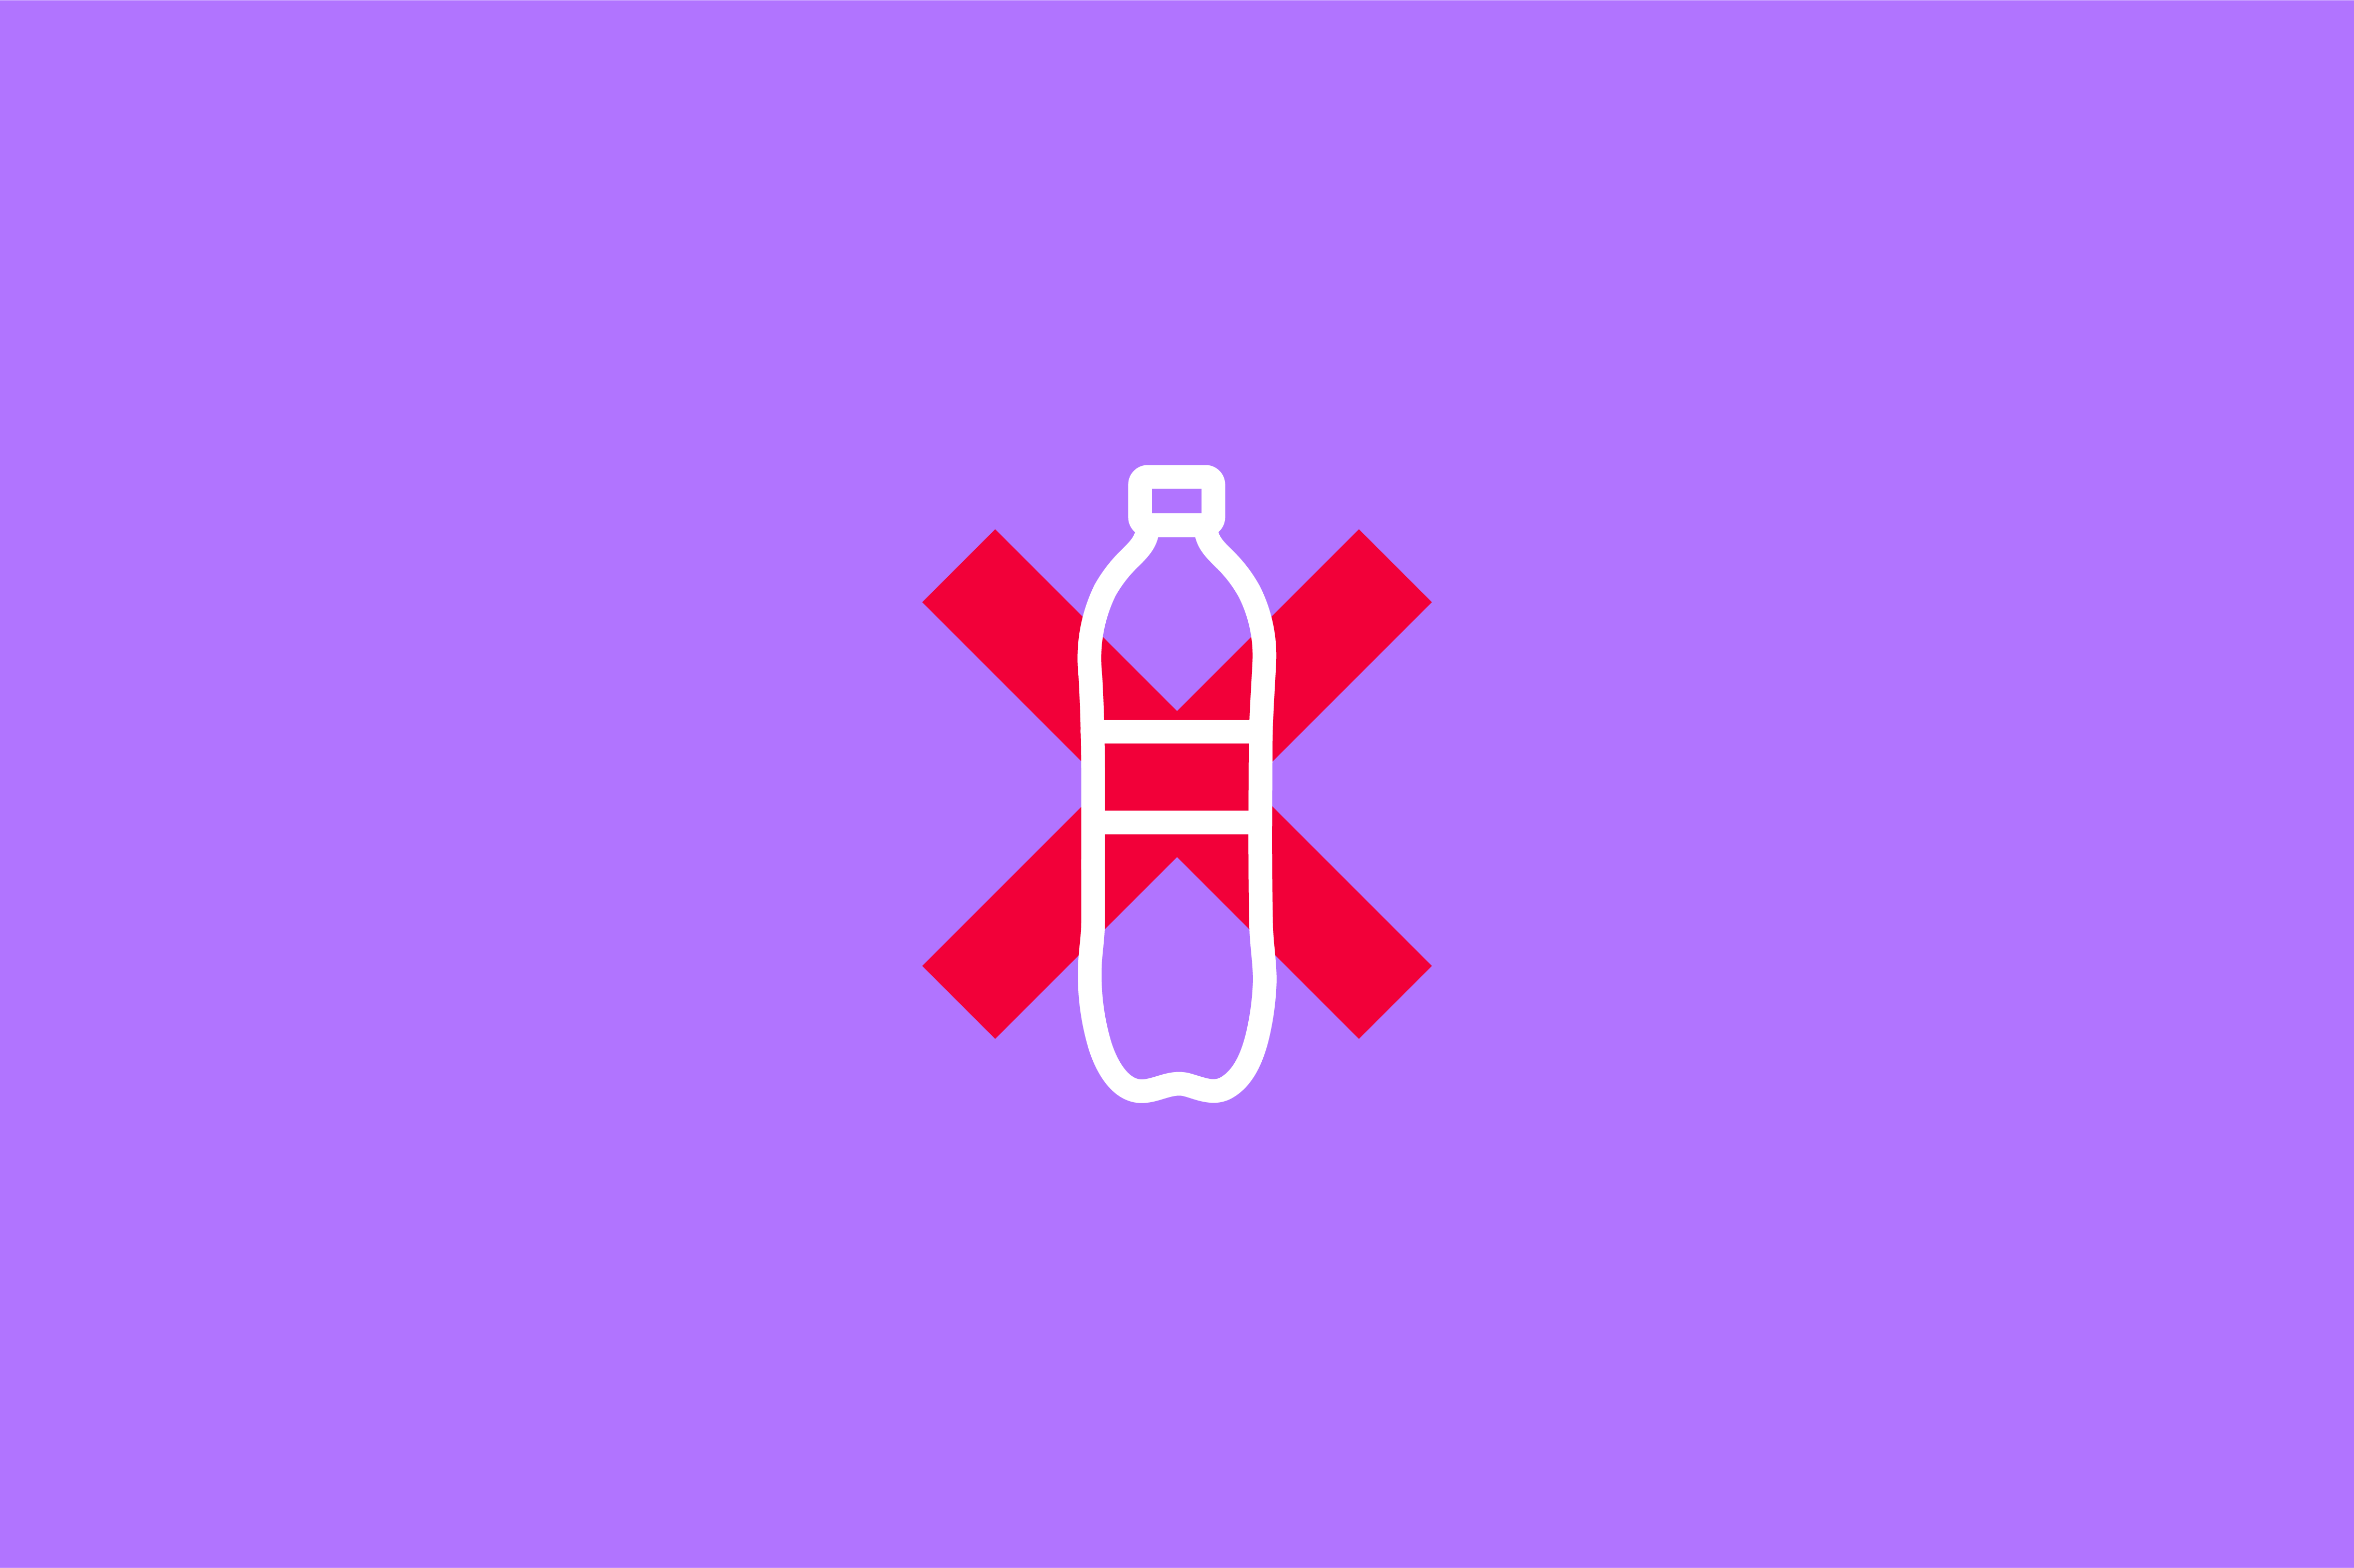 grpahic of a plastic bottle with a red cross through it